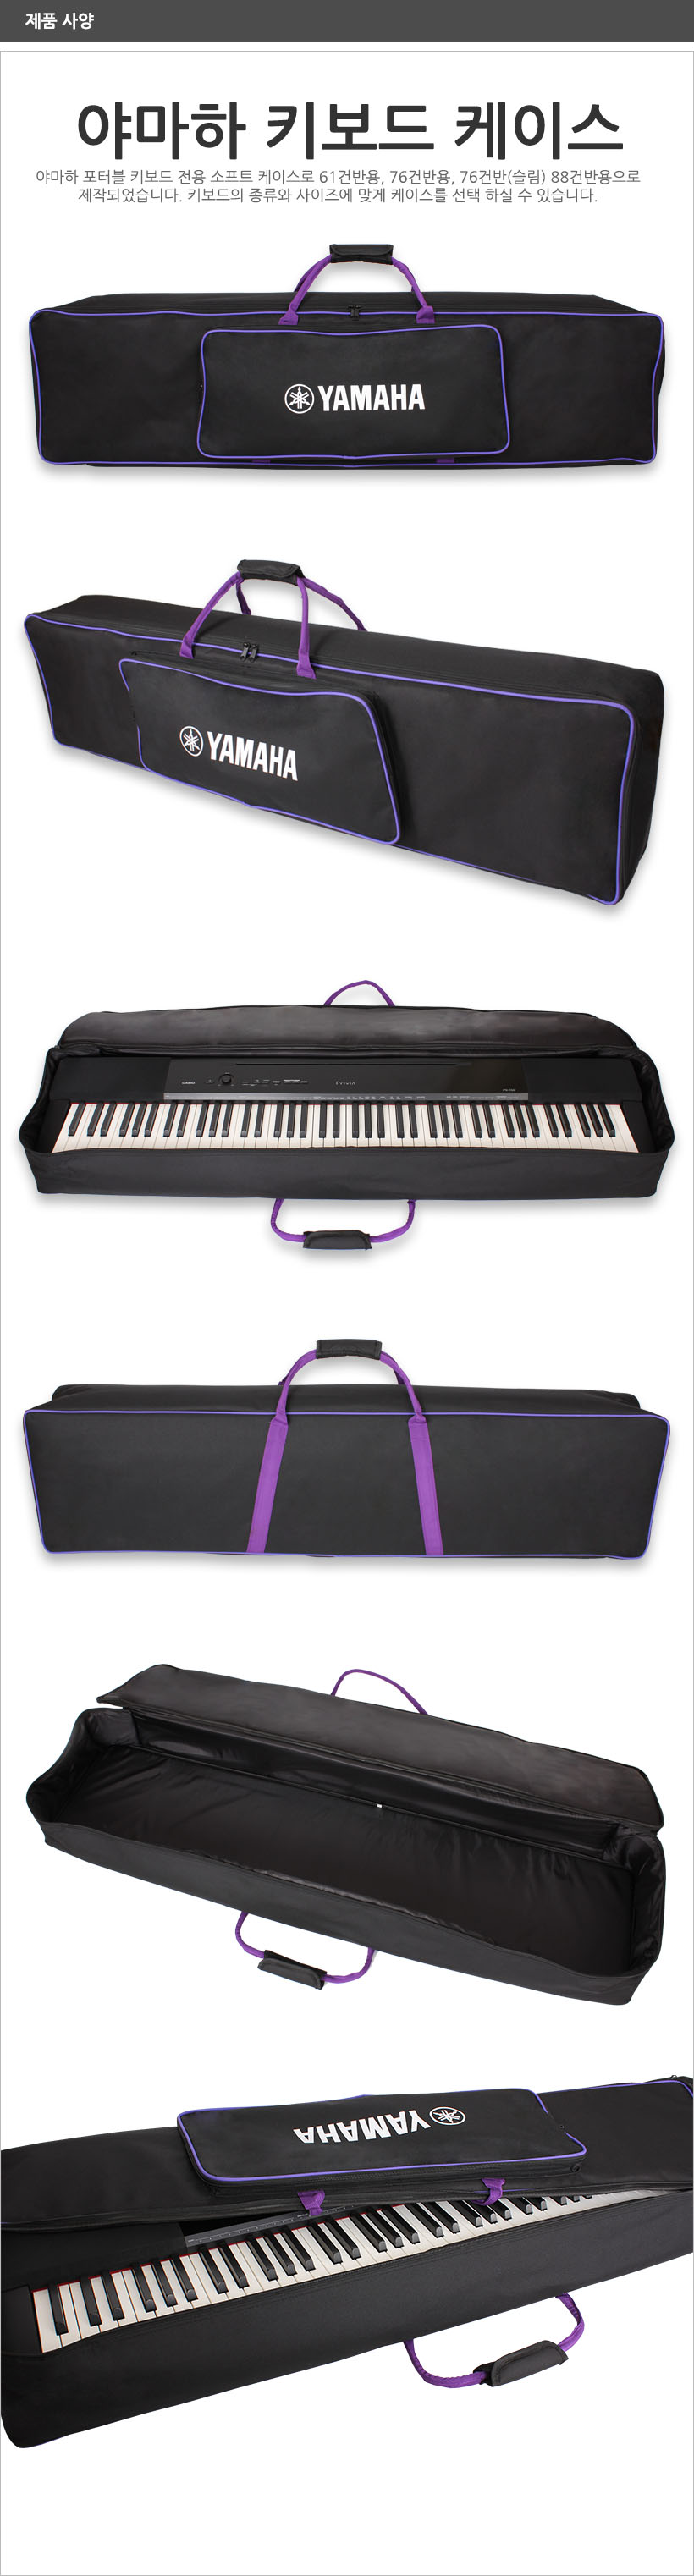 Yamaha-Keyboard-Case 제품 사양